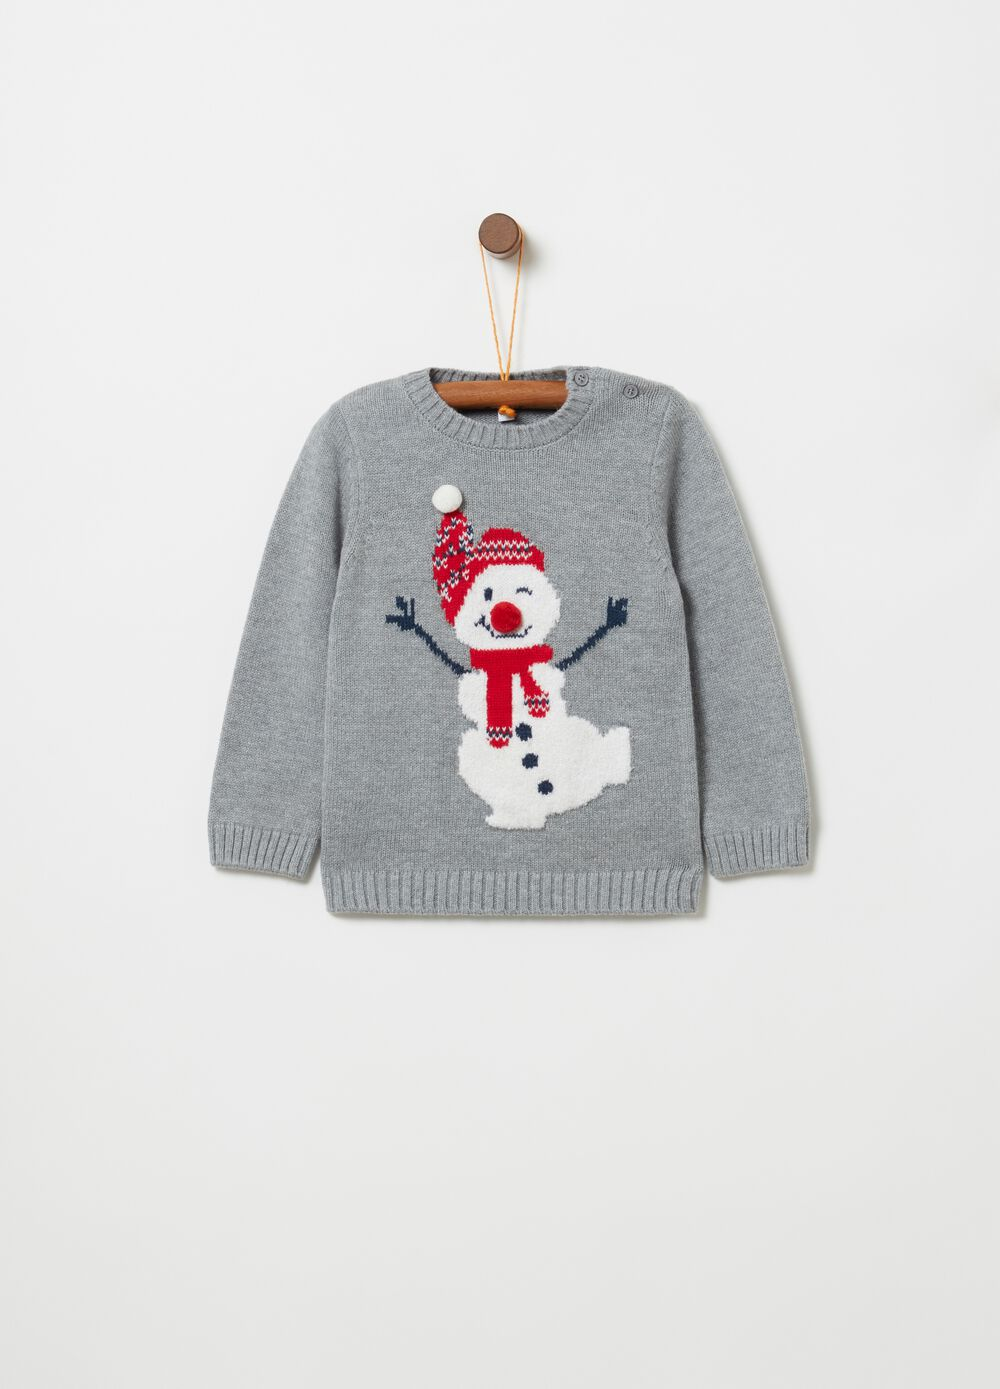 Knitted crew-neck top with snowman embroidery